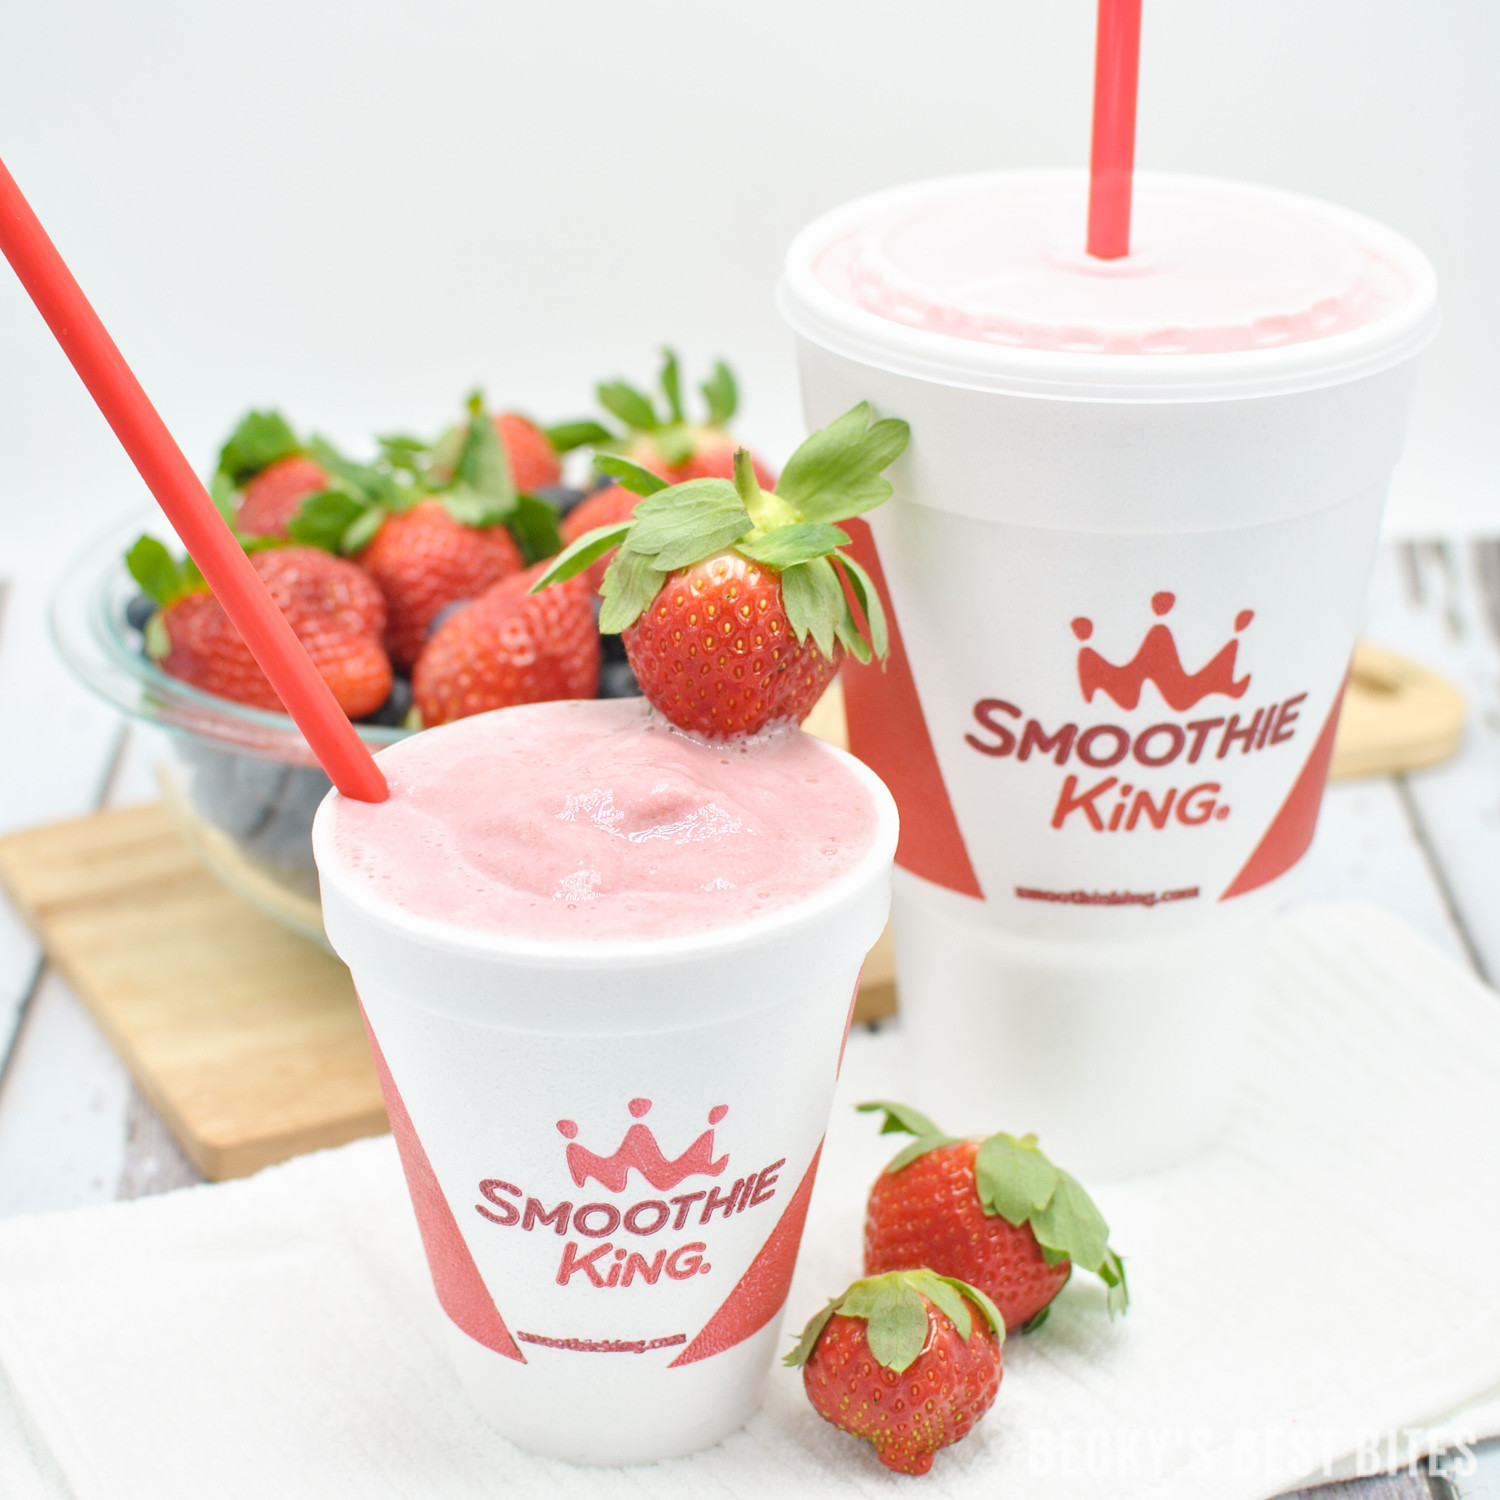 Smoothie King Recipes  Change A Meal Challenge with Smoothie King